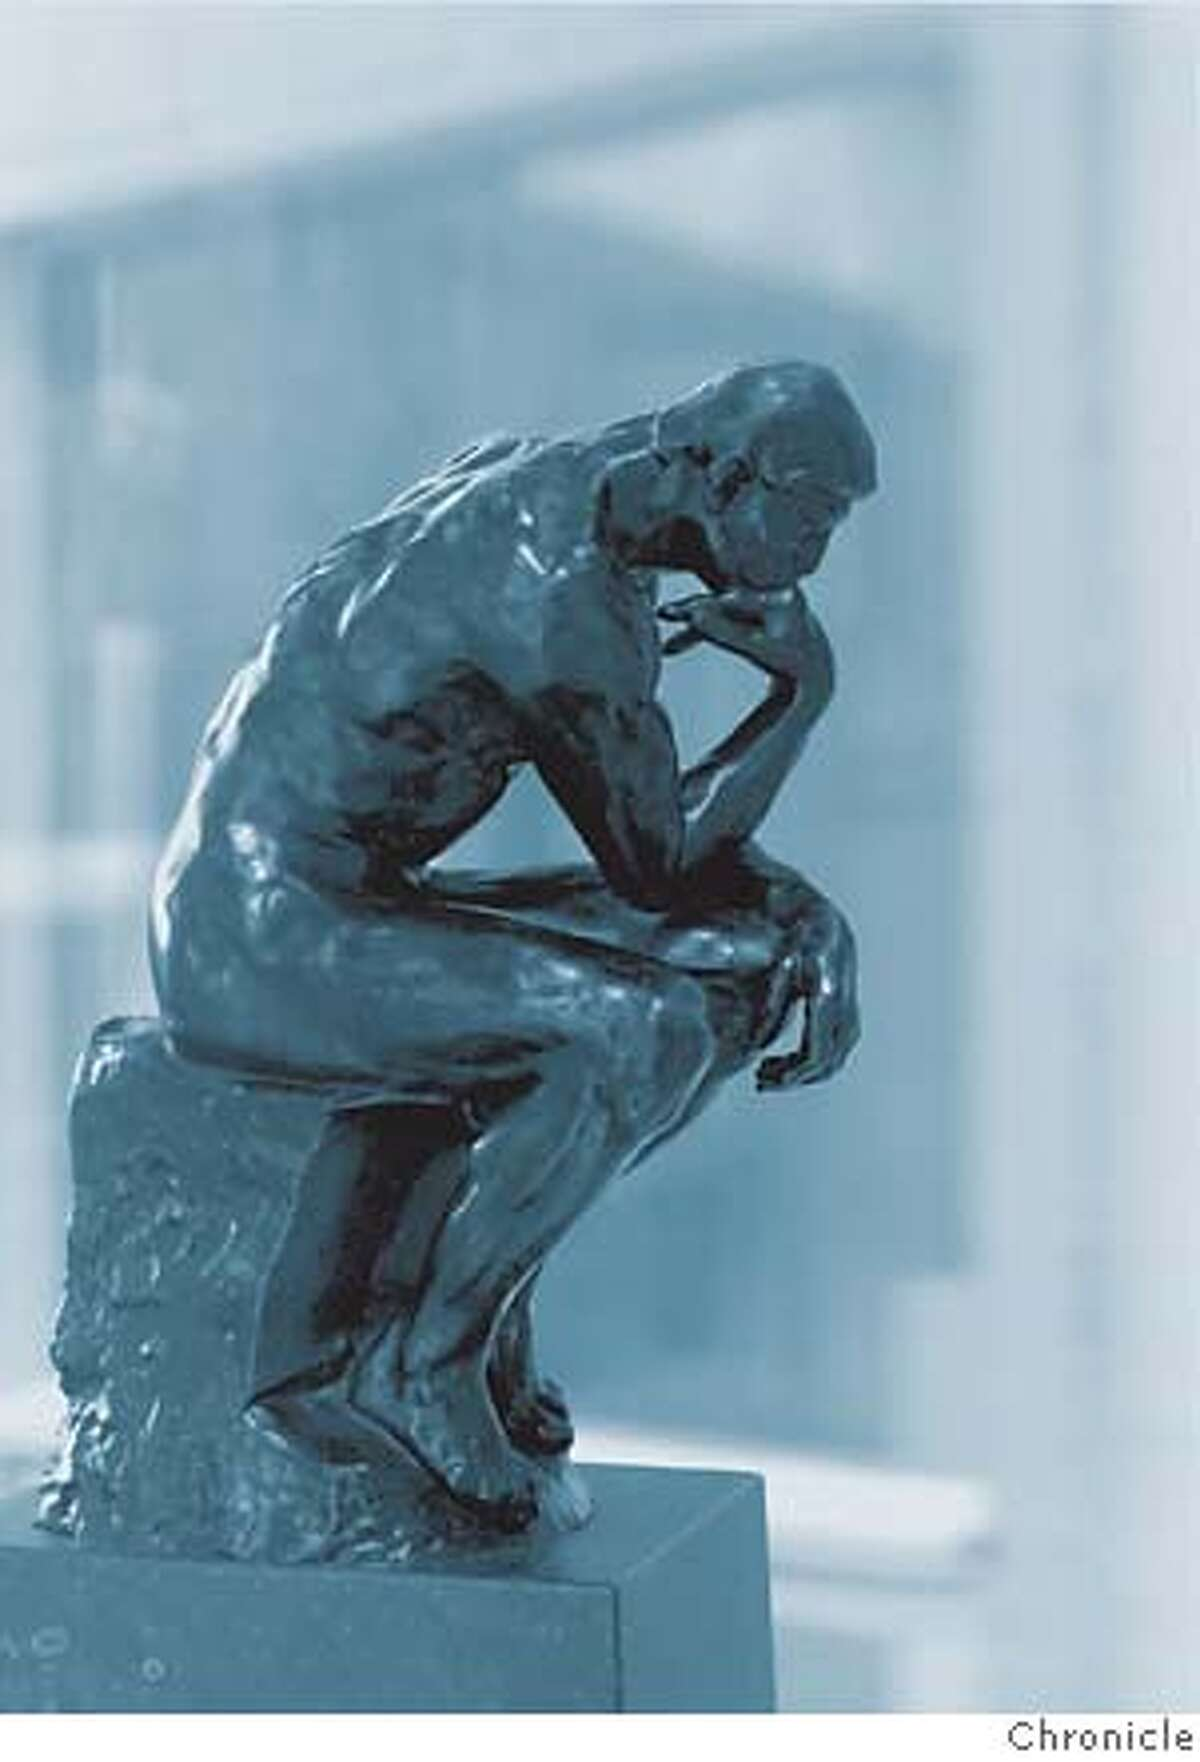 """photo illustration for Steven Winn column on unconscious thinking in art. Chronicle__COLLECTING12F-C-31JAN00-PK-JLT Rodin's 1904 sculpture """"Le Penseur"""" is part of the collection of Allan Rappaport, M.D. of Tiburon, CA._25 Rolling Hills Road - Tiburon, CA_PHOTO BY JERRY TELFER/THE CHRONICLE__CAT Datebook#Datebook#Chronicle#05/28/2007#ALL#5star#E1#0497001748"""